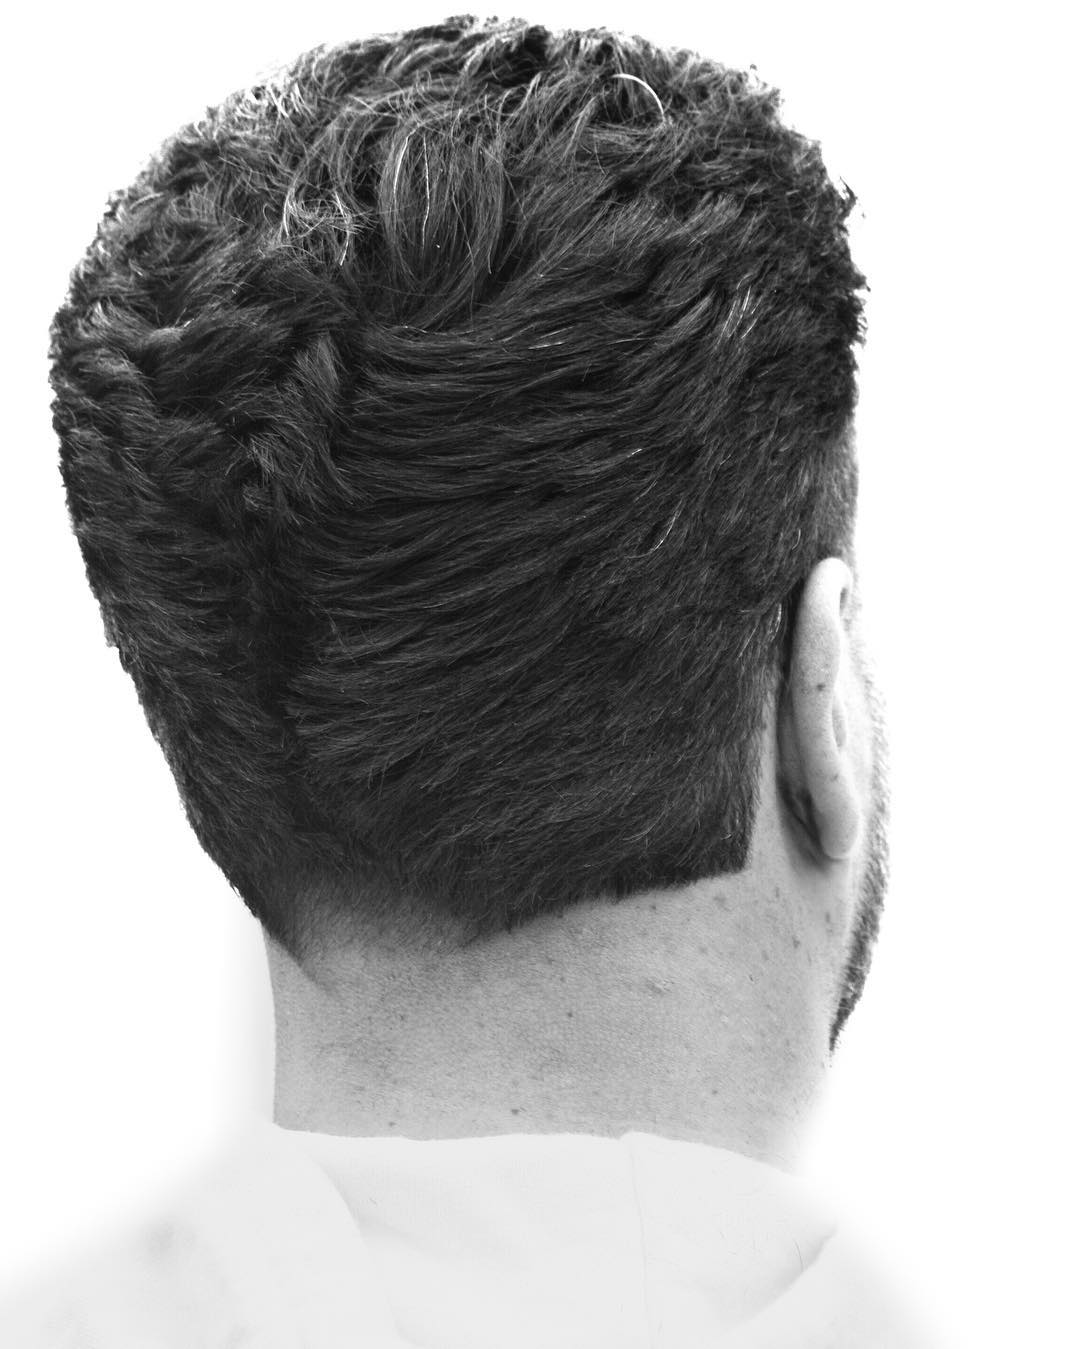 Theliamkenny Angled Neckline New Haircuts For Men 2018 Trends